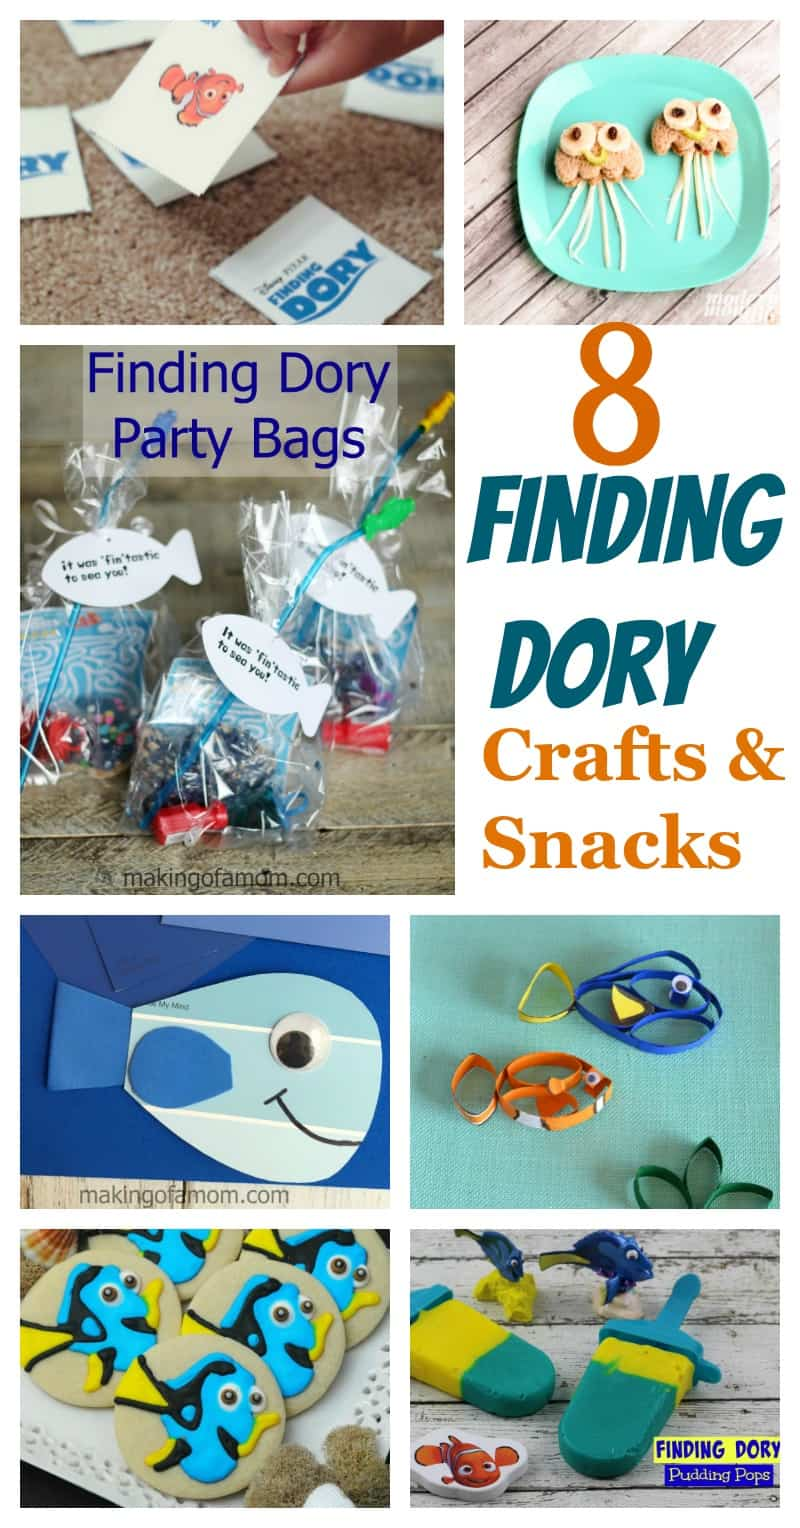 8 Finding Dory Crafts & Snacks for your preschool child! Fun kids activities and themed snack ideas.